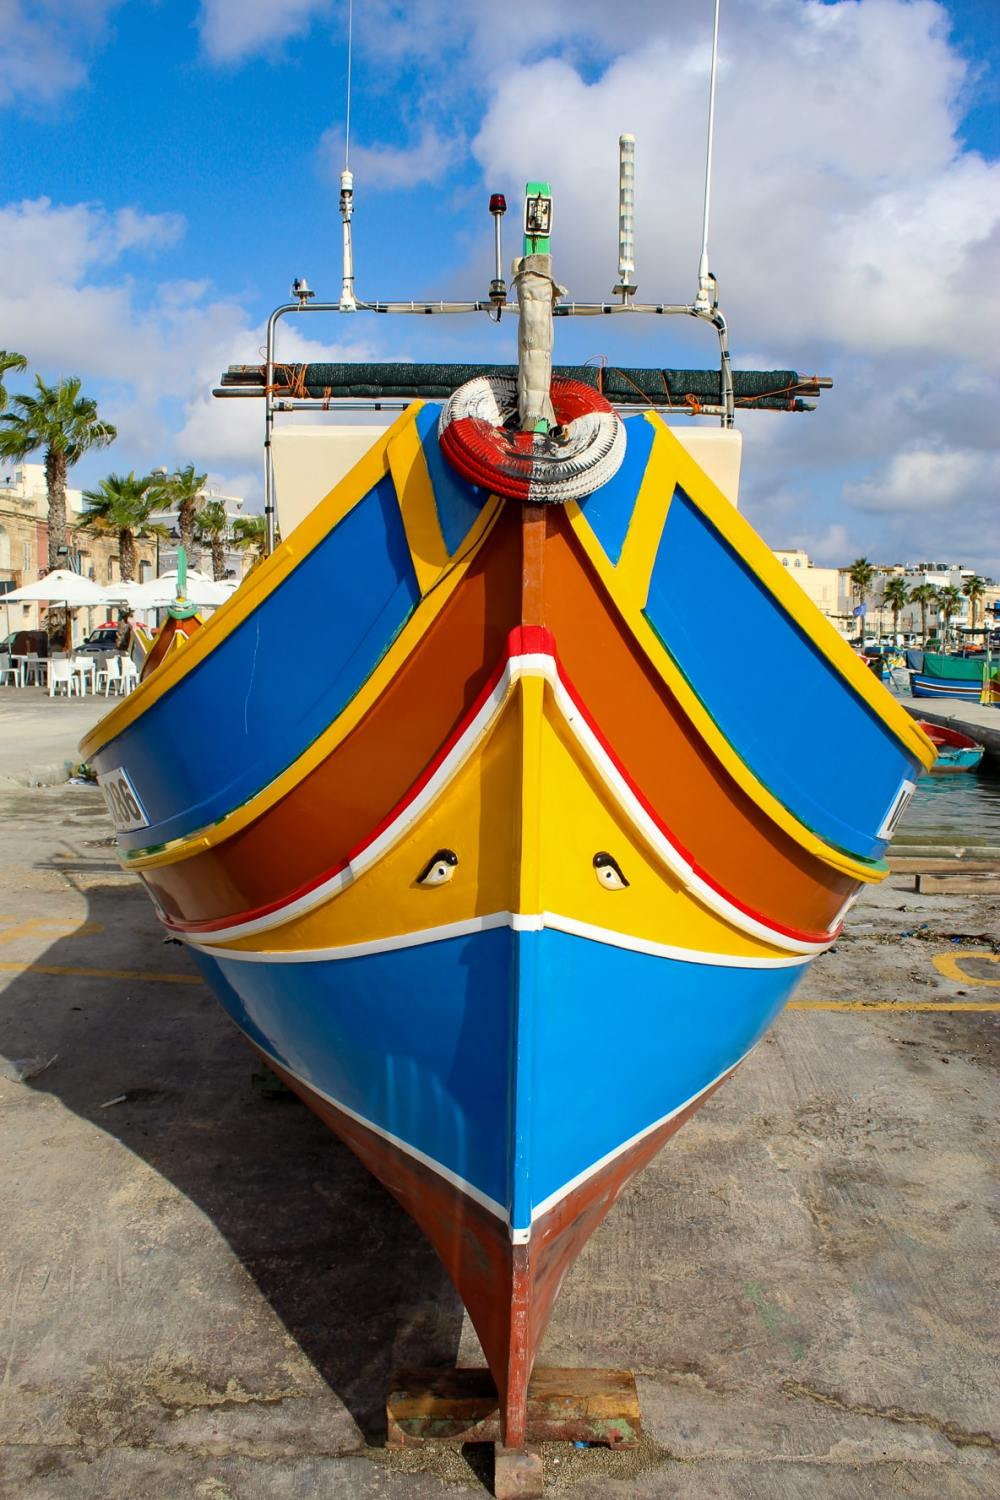 A luzzu, the traditional fishing boat of the Maltese Islands.